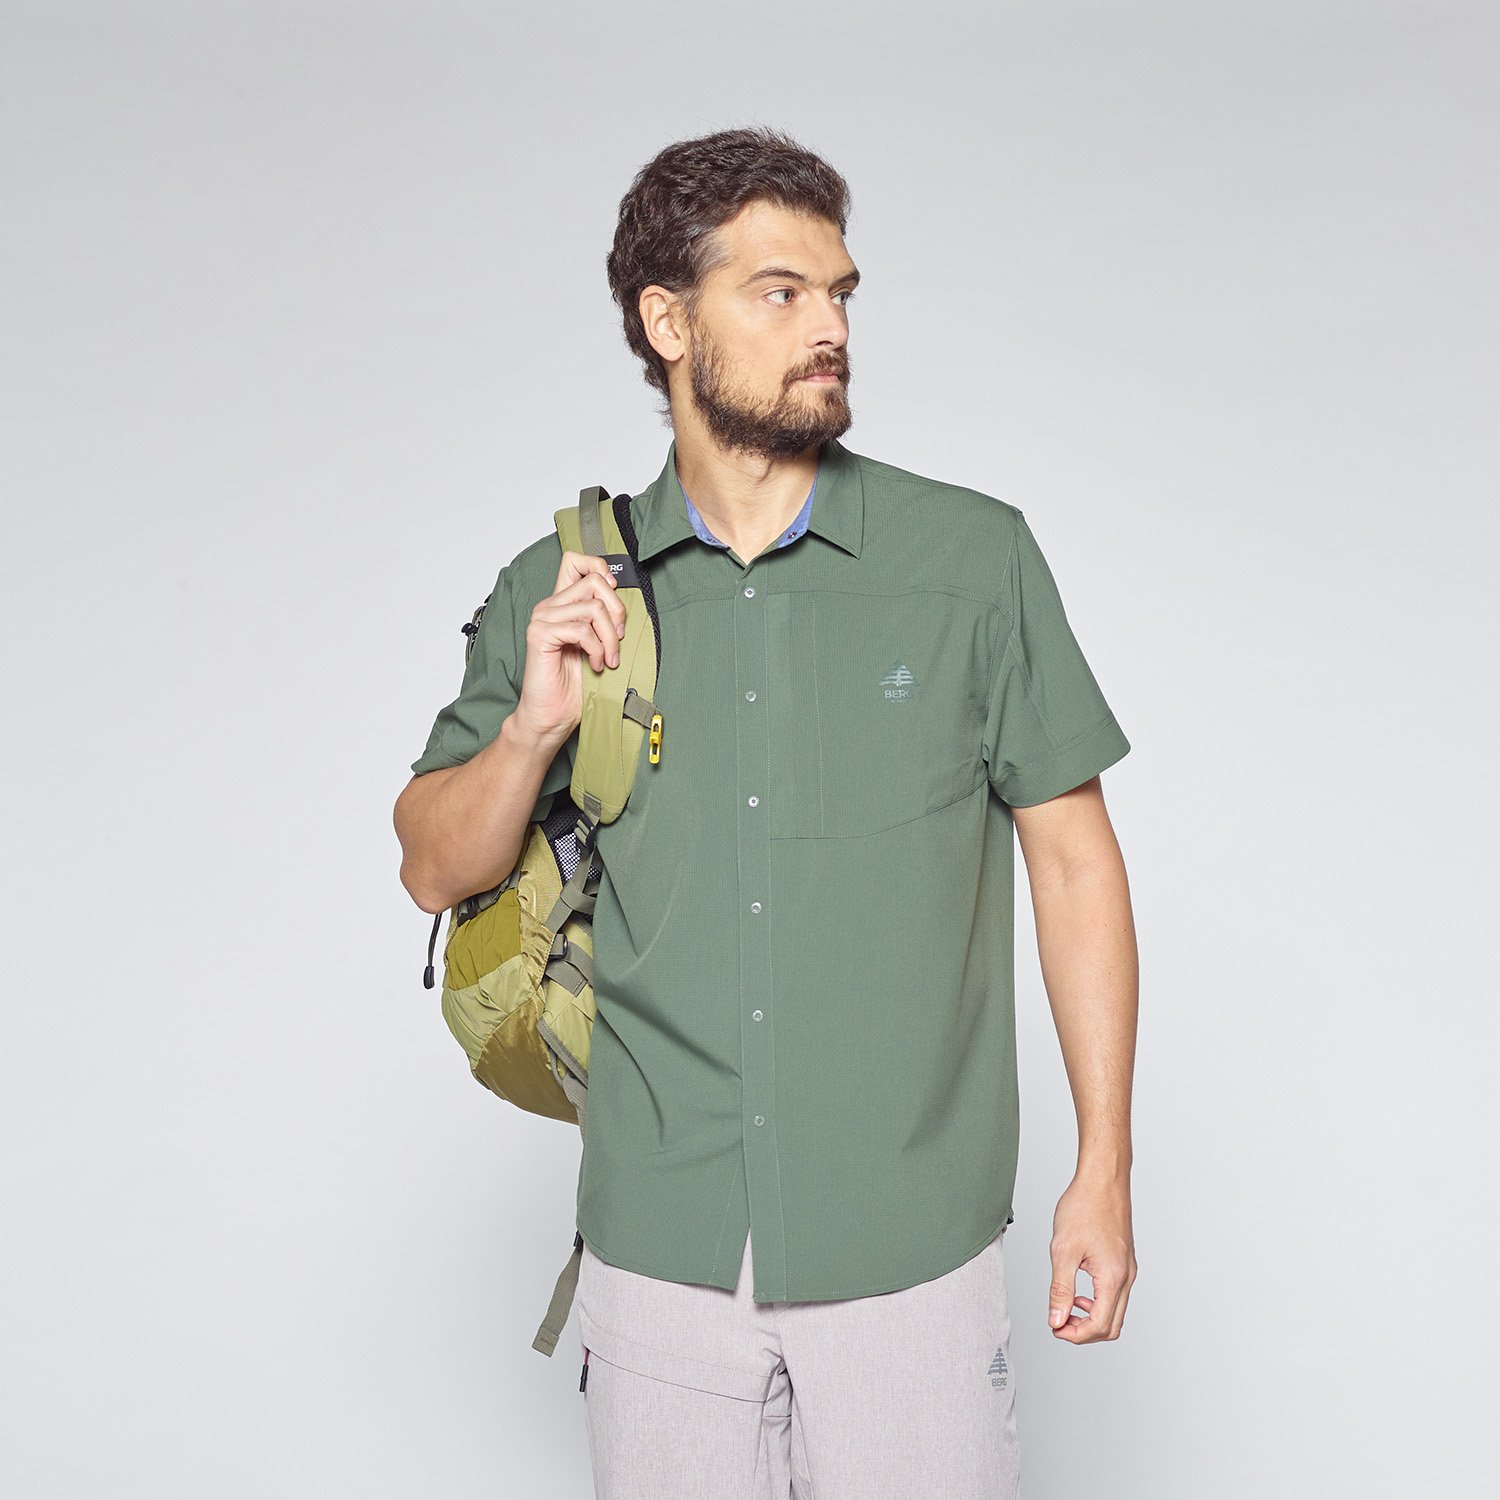 Berg Outdoor Herren gorumara Solid Shirt